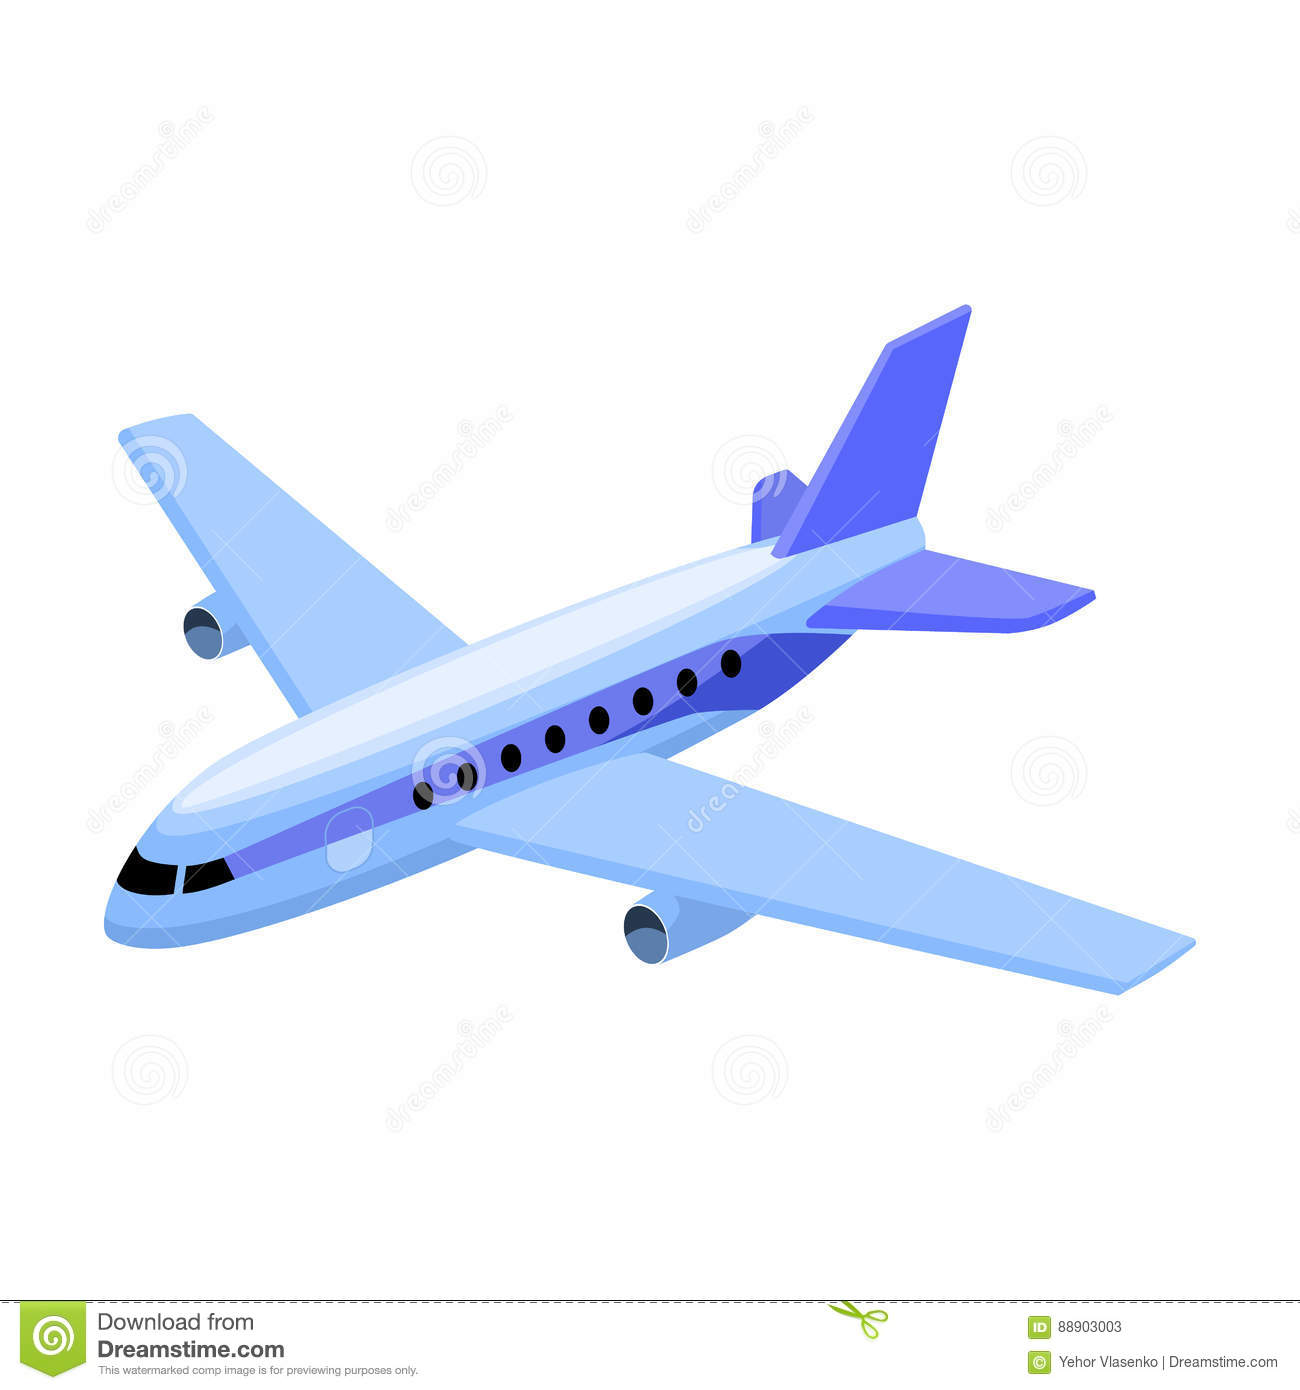 Aircraft For Transportation Of A Large Number Of People  The Safest